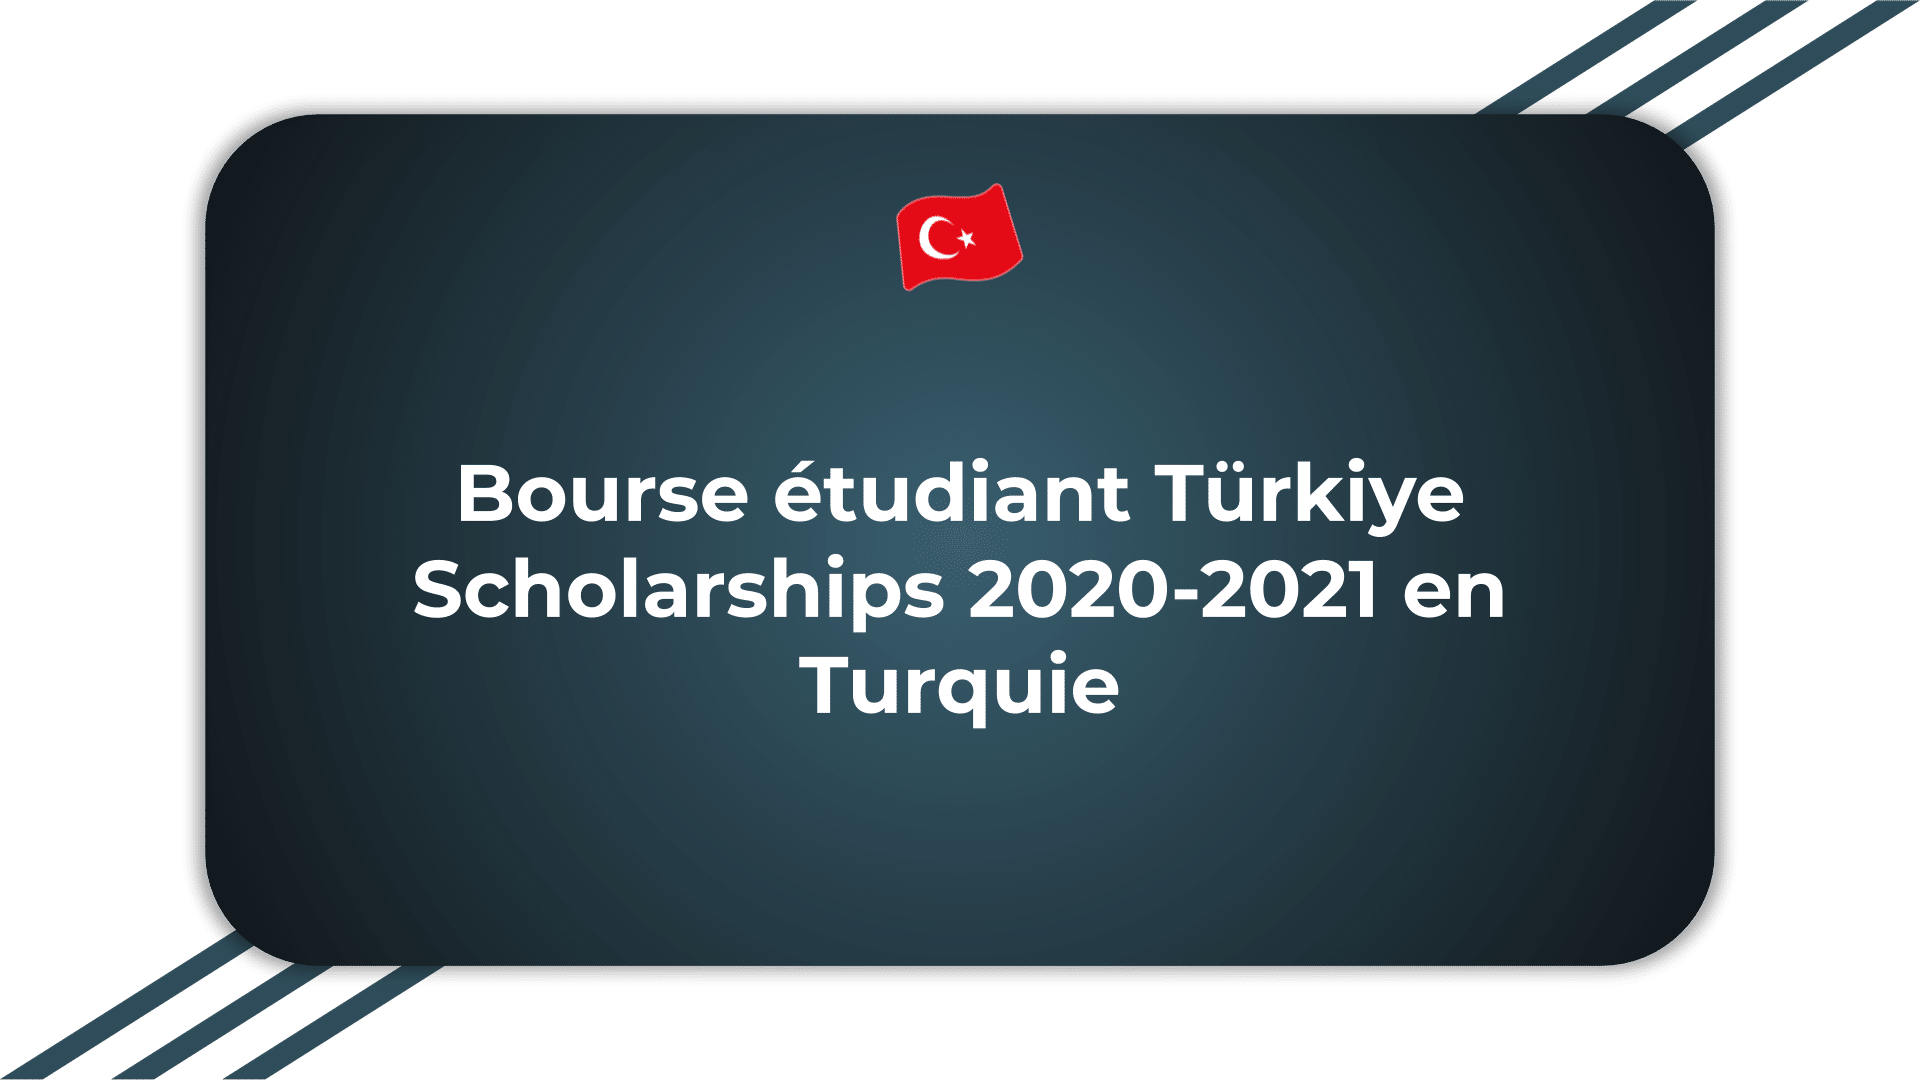 Bourse étudiant Türkiye Scholarships